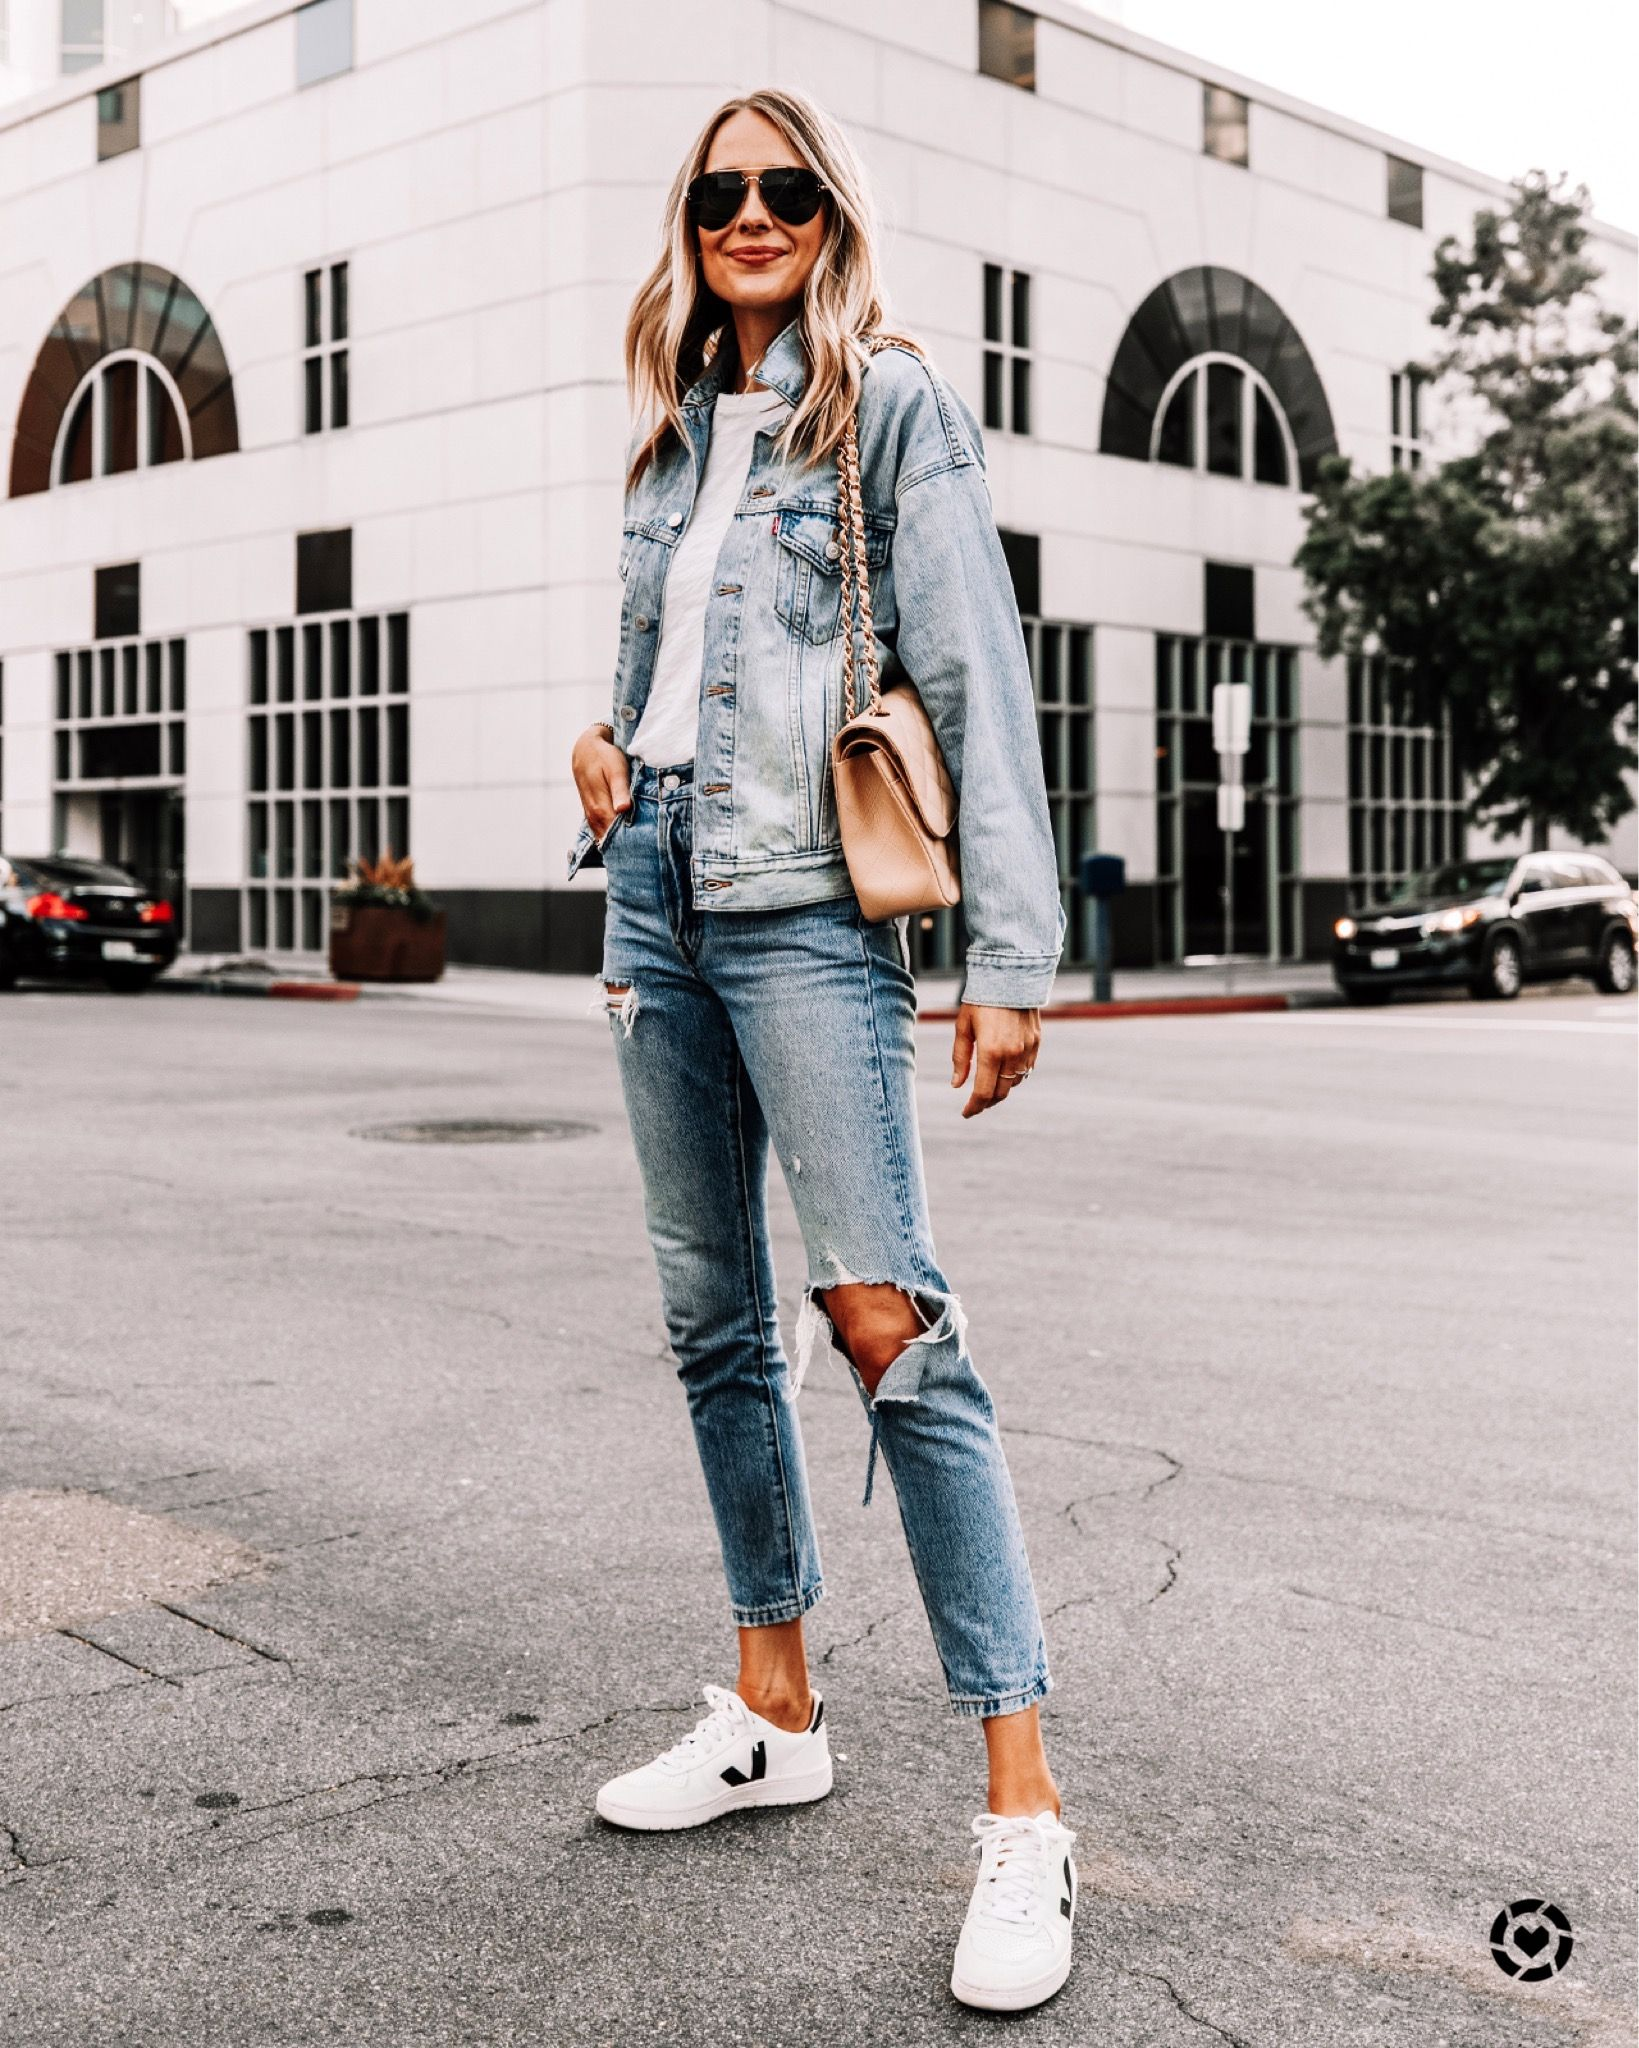 Jean Jacket Outfit Jeans And Jean Jacket Jeans And Denim Jacket Ripped Jeans And Jean Jacket Fashion Jackson Jeans And Sneakers Outfit Ripped Jeans Outfit [ 2048 x 1639 Pixel ]